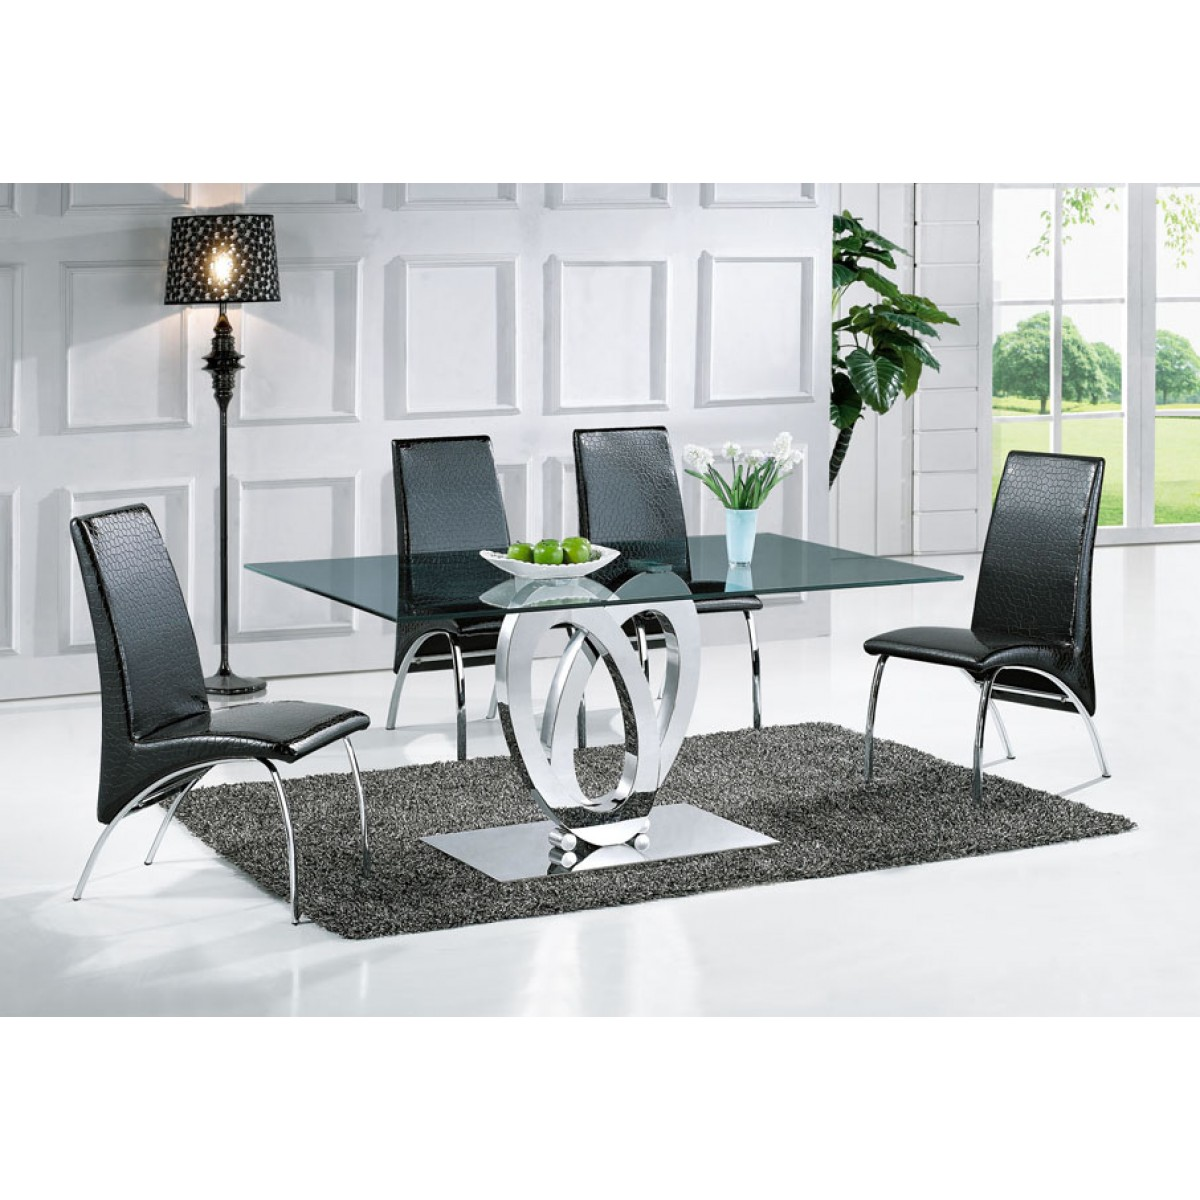 Table manger design ellipse taille au choix tables for Xooon table salle a manger